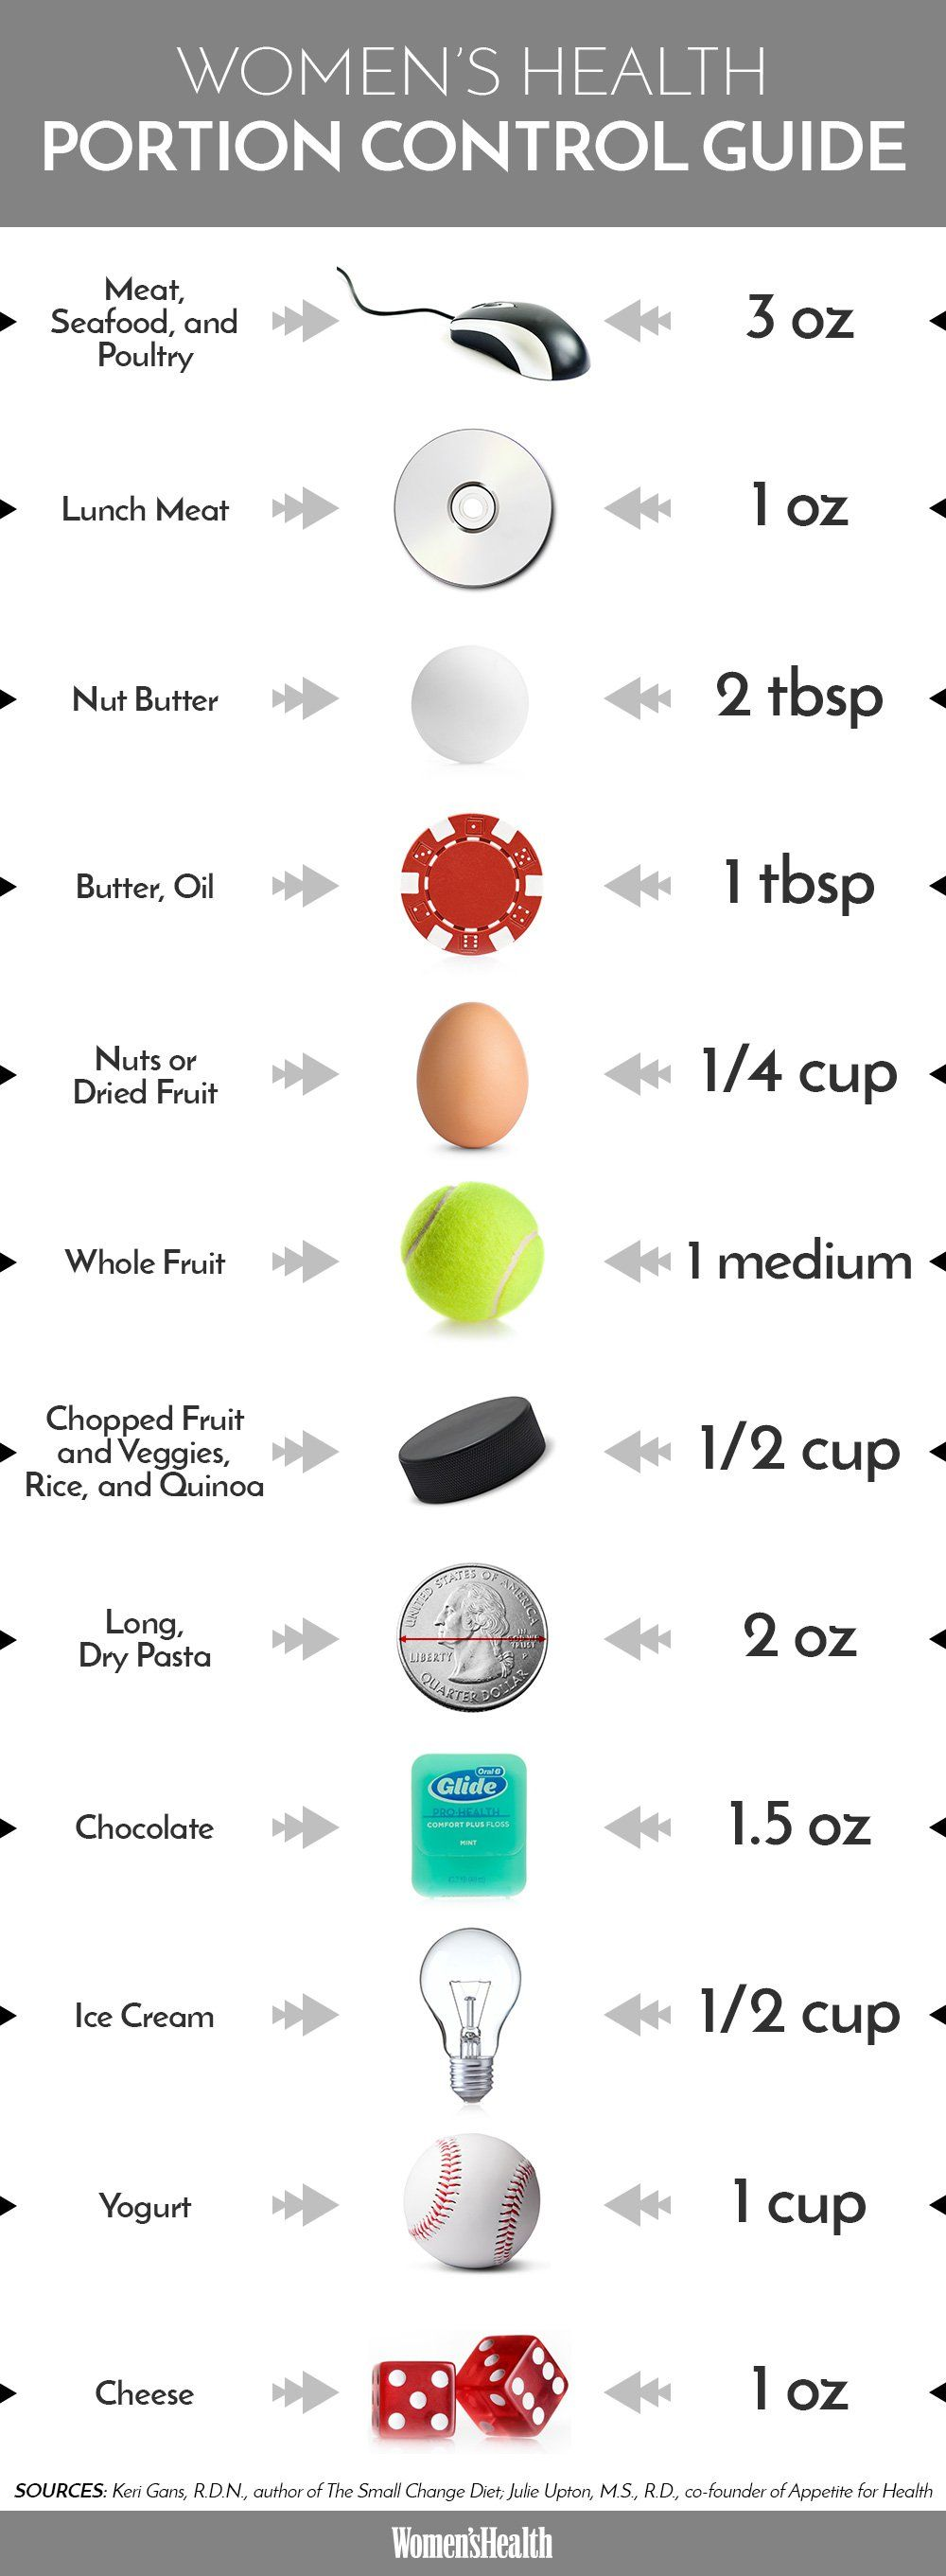 portion control tips you  ve never heard before also chart food portions and serving sizes mindful rh pinterest